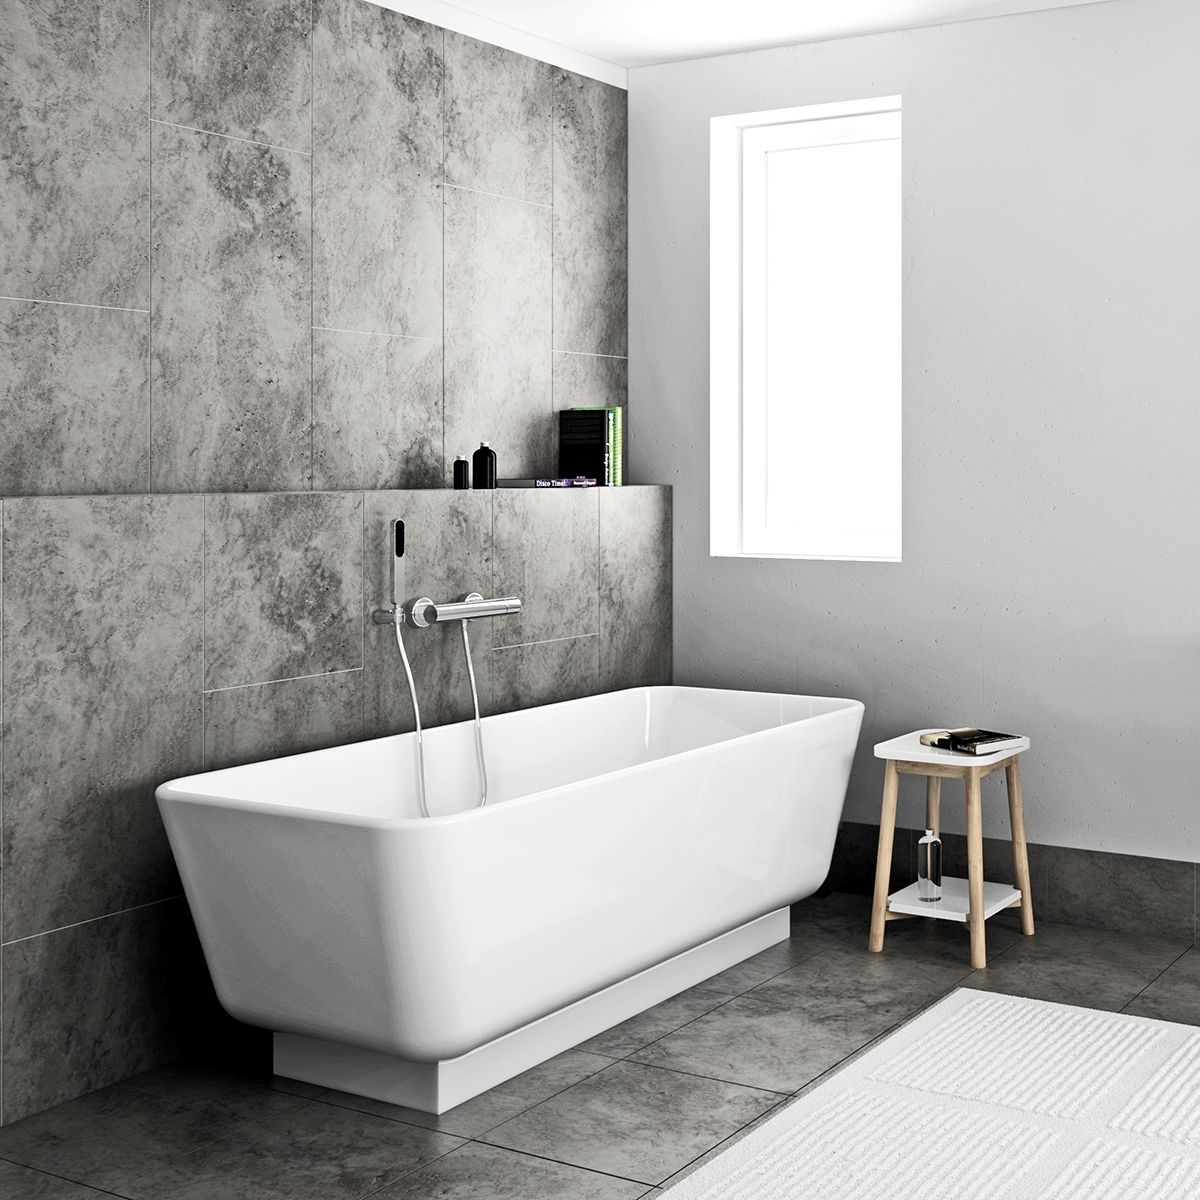 Balta Bath Freestanding Marmorin Skillfully Crafted Using 500 Million Year Old Dolomitic Marble Designed And Manufactured In Poland Available Exclus In 2020 Design